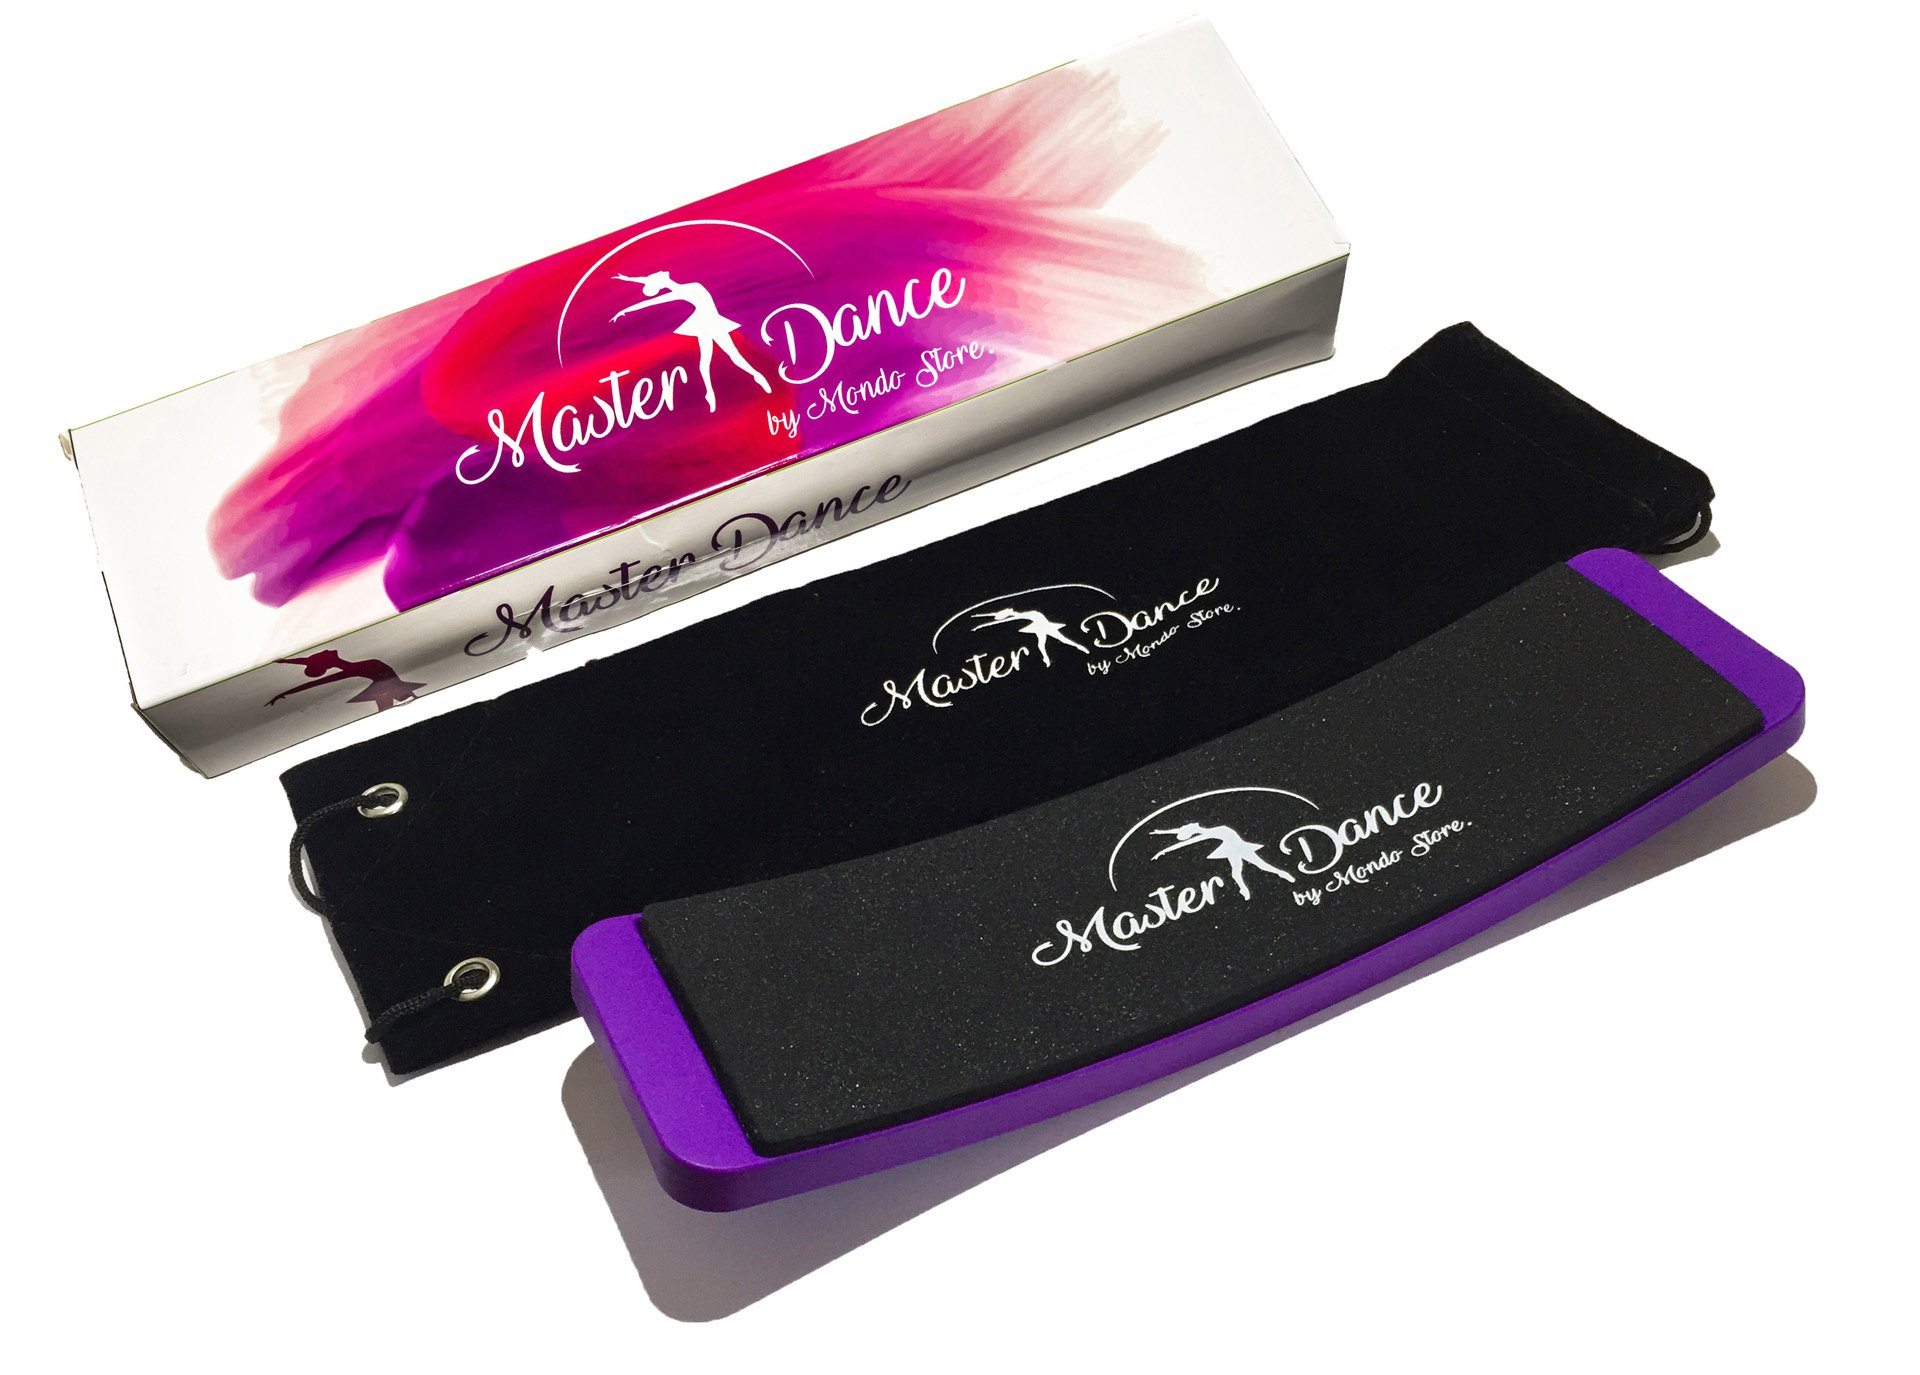 Master Dance Ballet Turn Board Perfect Pirouettes, Turns, Spins- Improve Balance- Portable Dancers Training Equipment-FREE eBook- Premium Quality Gift Box, Carry Bag and Pirouette Tips Included by Master Dance